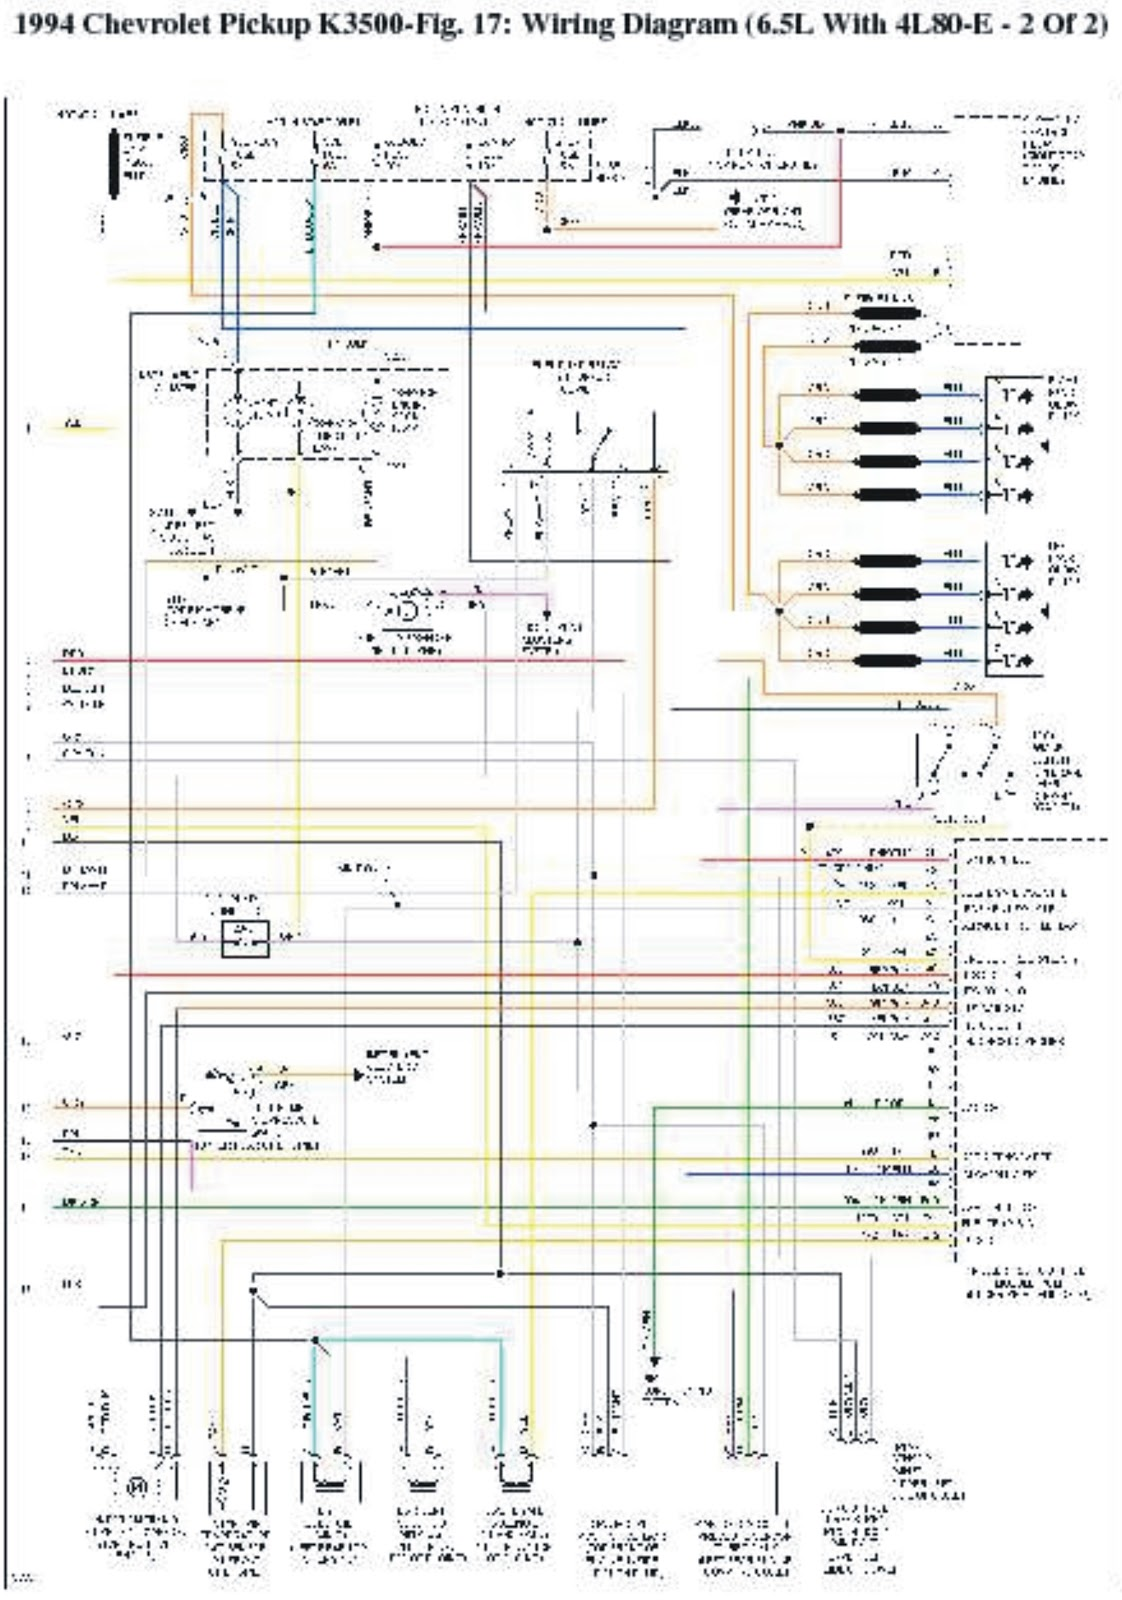 Wiring Diagram For 1990 Gmc Sierra : Gmc sierra wiring diagram